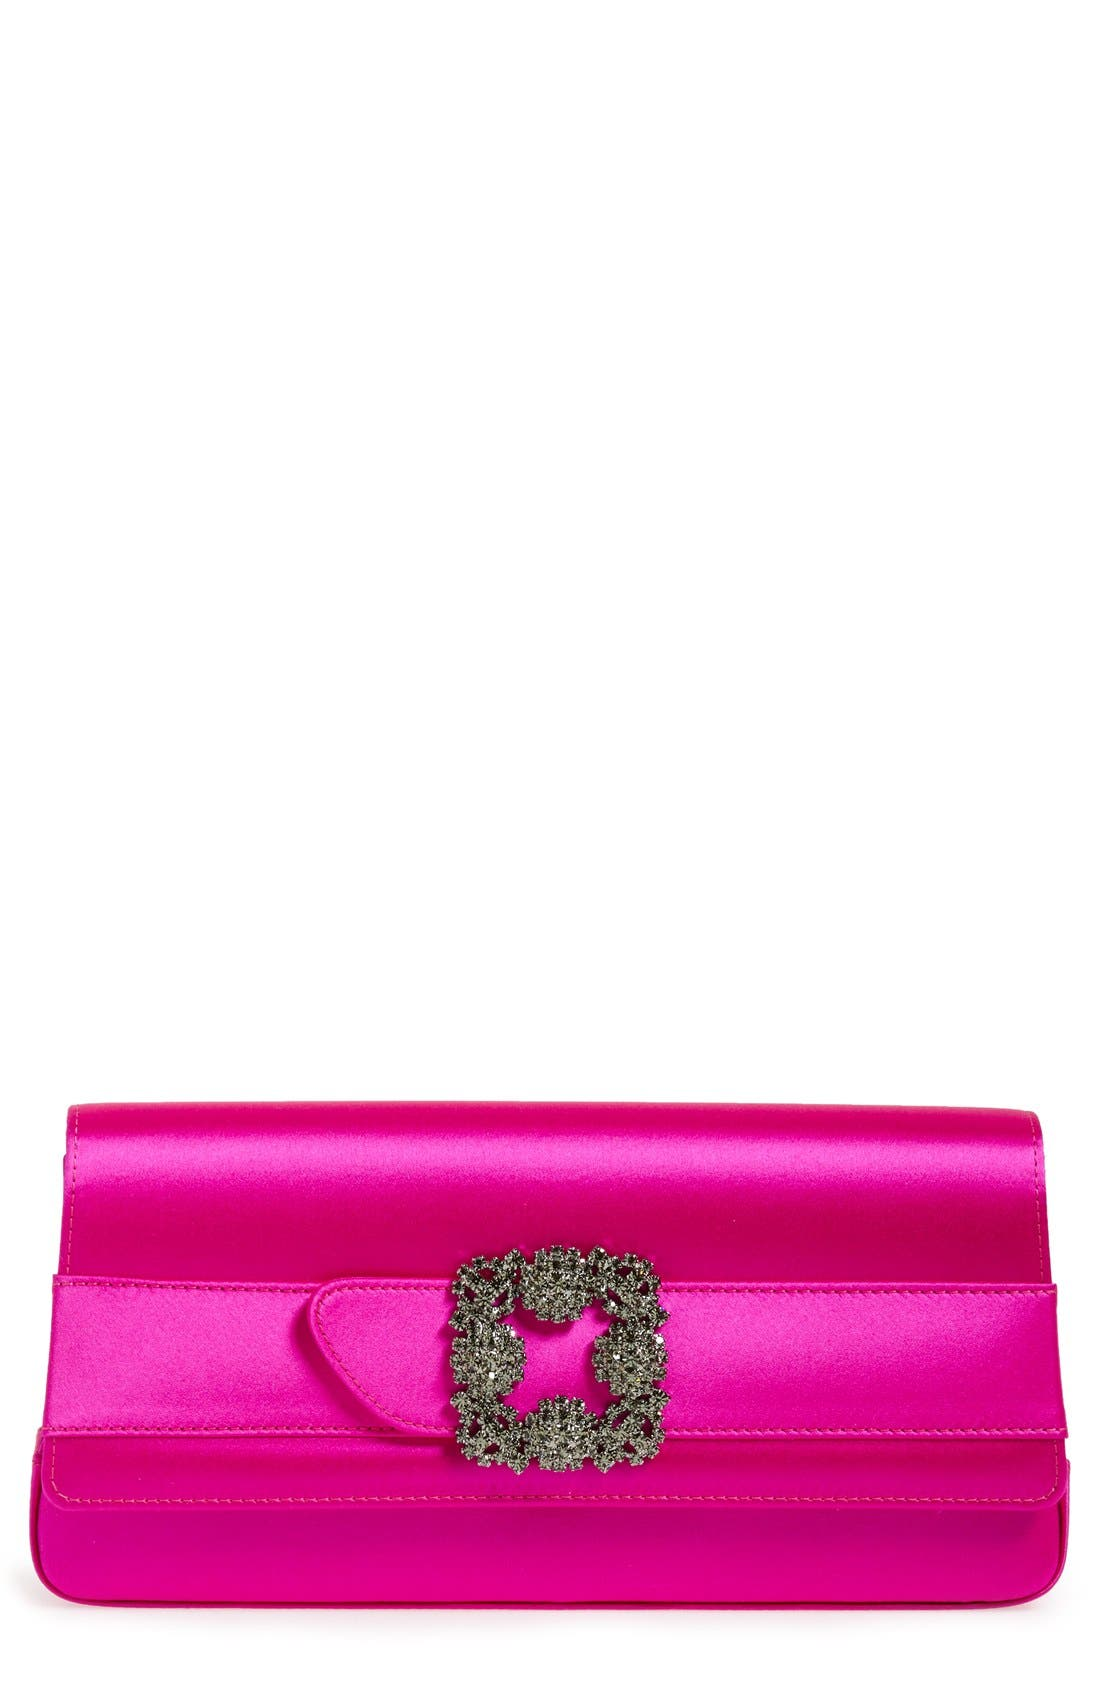 'Gothisi' Clutch,                             Main thumbnail 7, color,